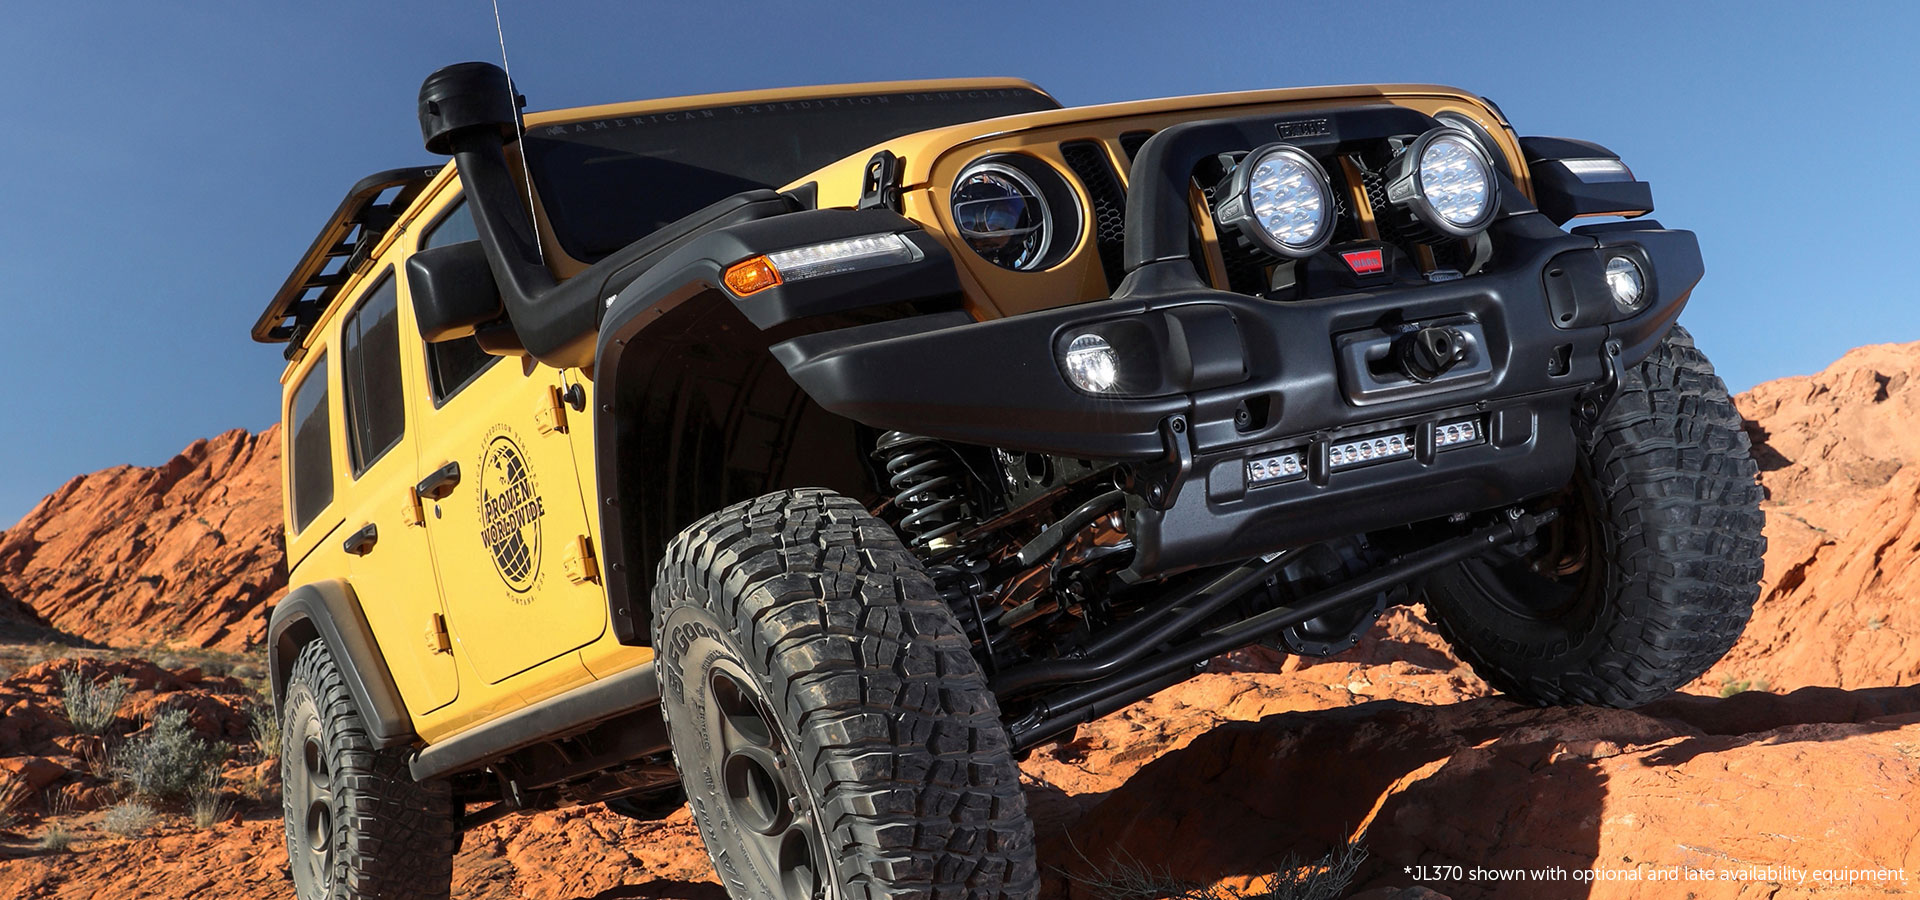 American Expedition Vehicles Debuts New Overlanding Rigs The Shop Magazine